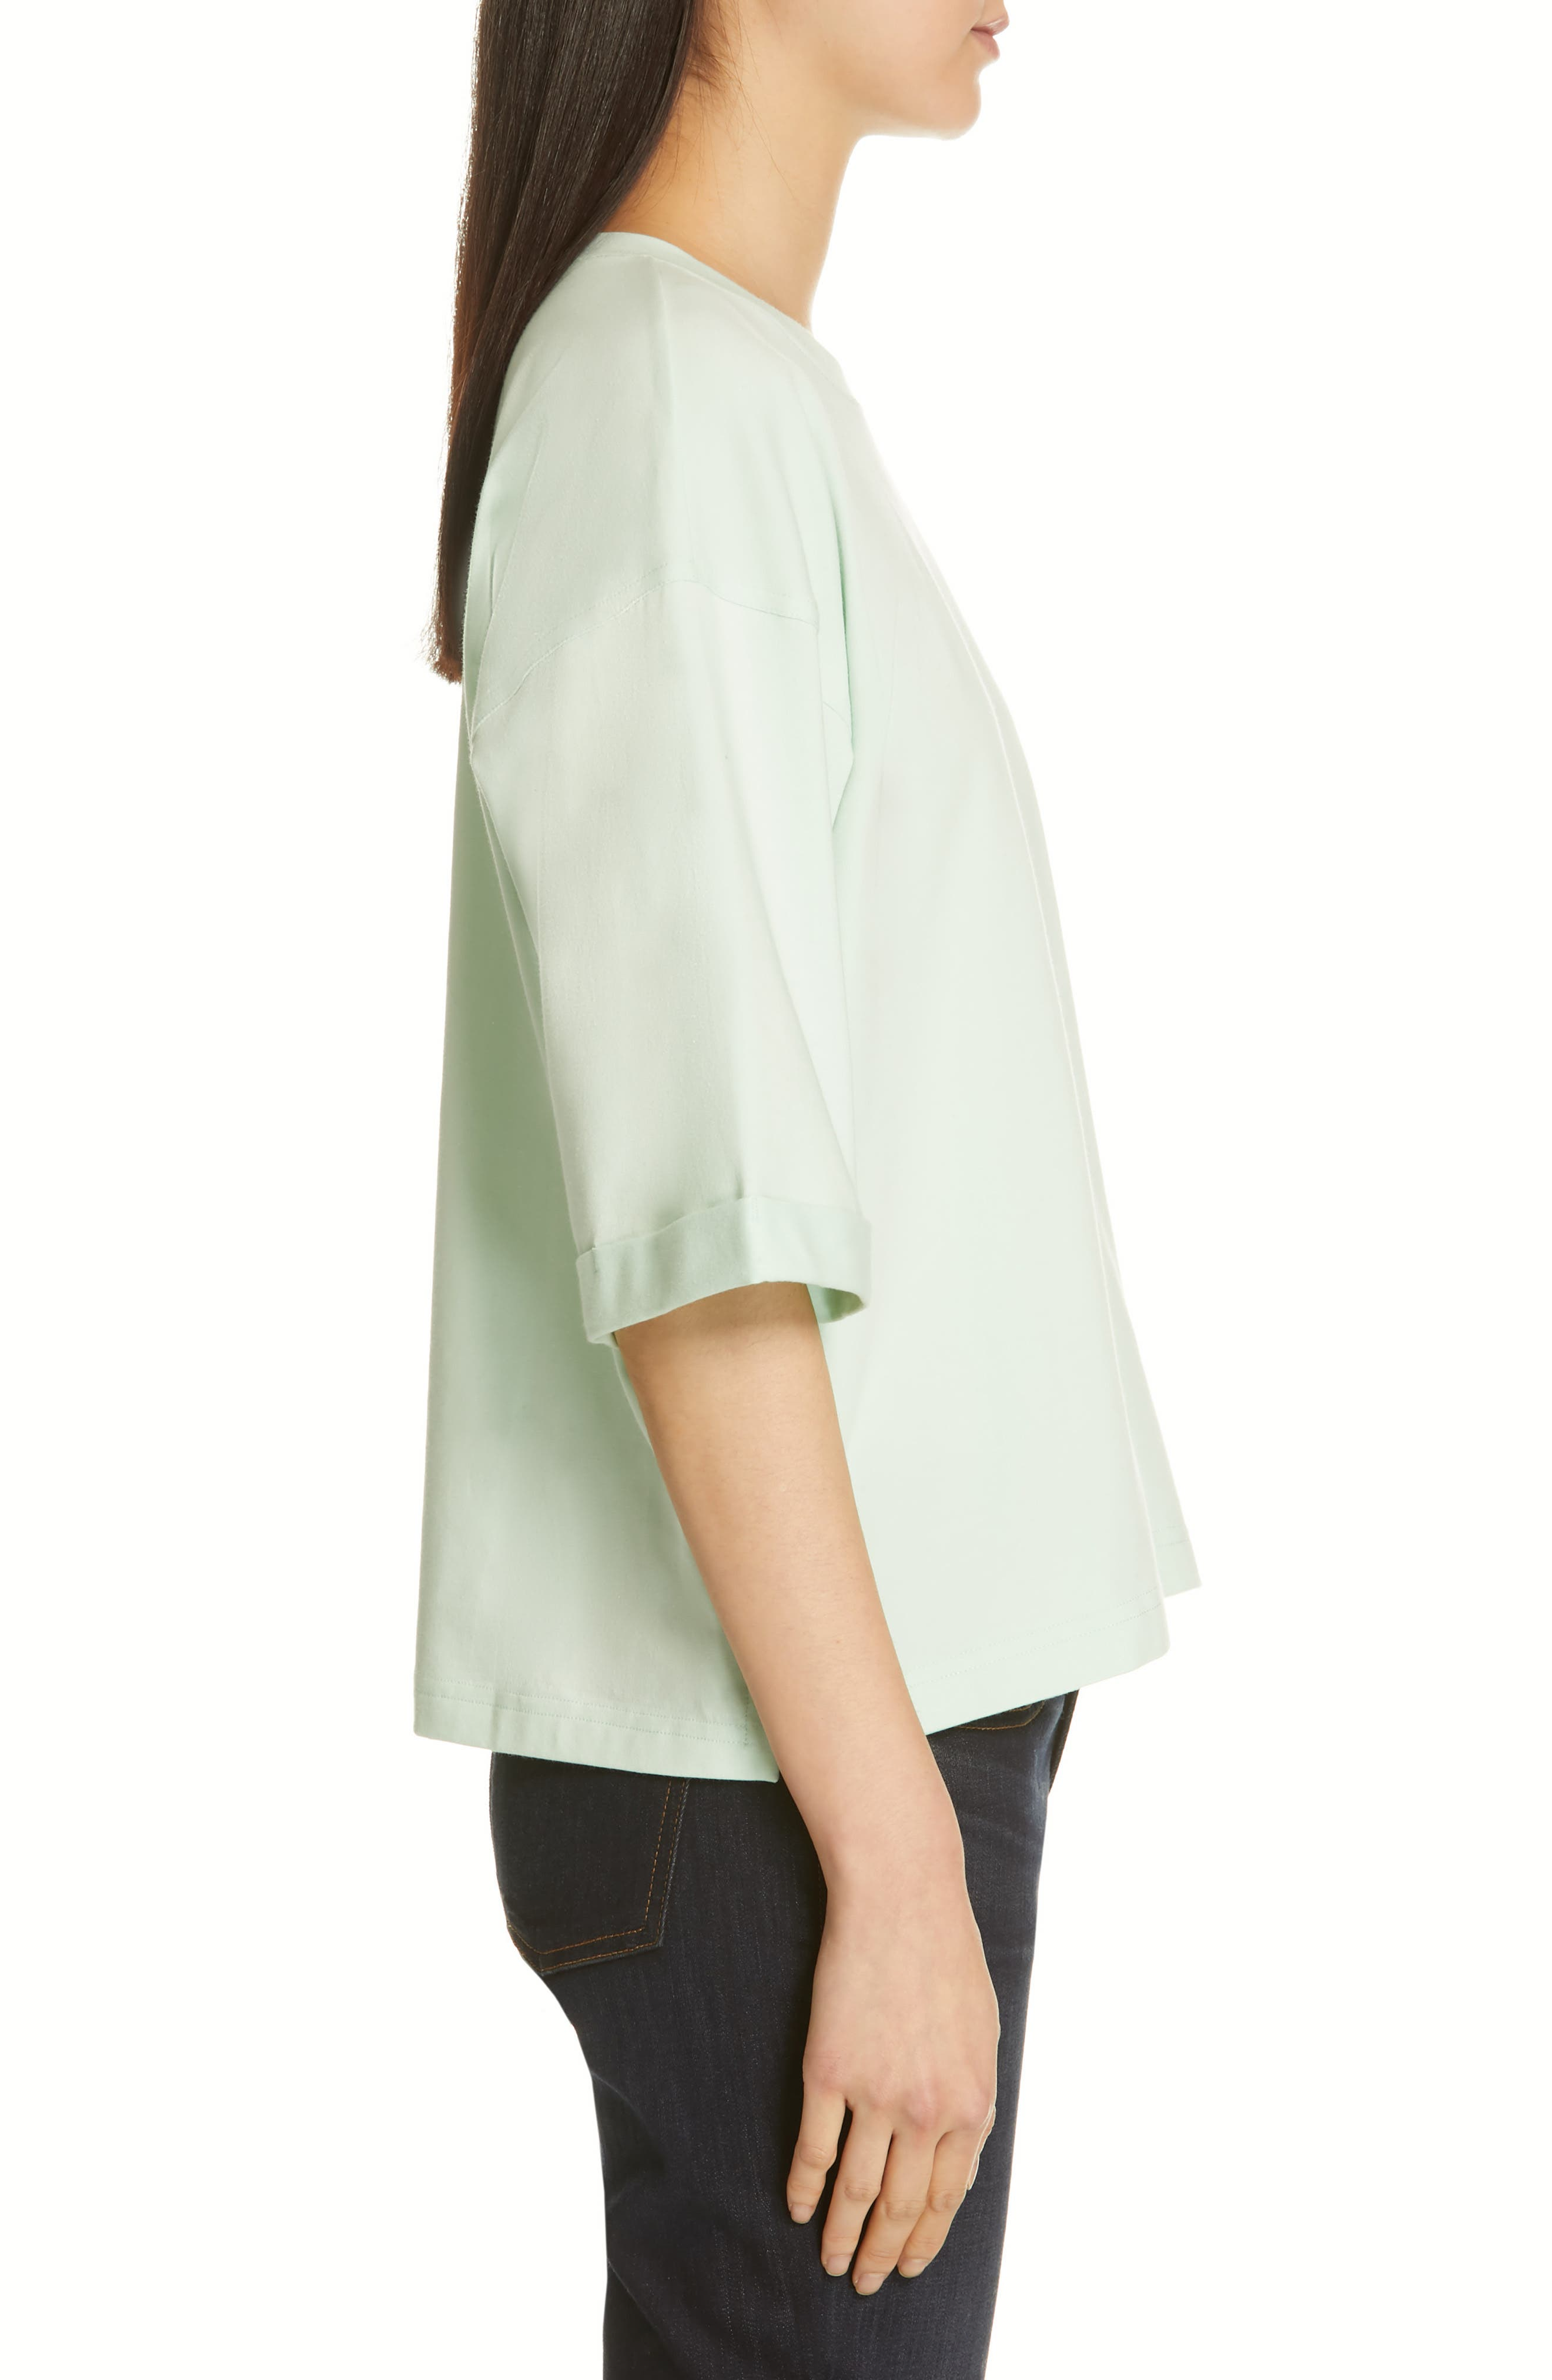 EILEEN FISHER, Stretch Organic Cotton Top, Alternate thumbnail 3, color, PRISM